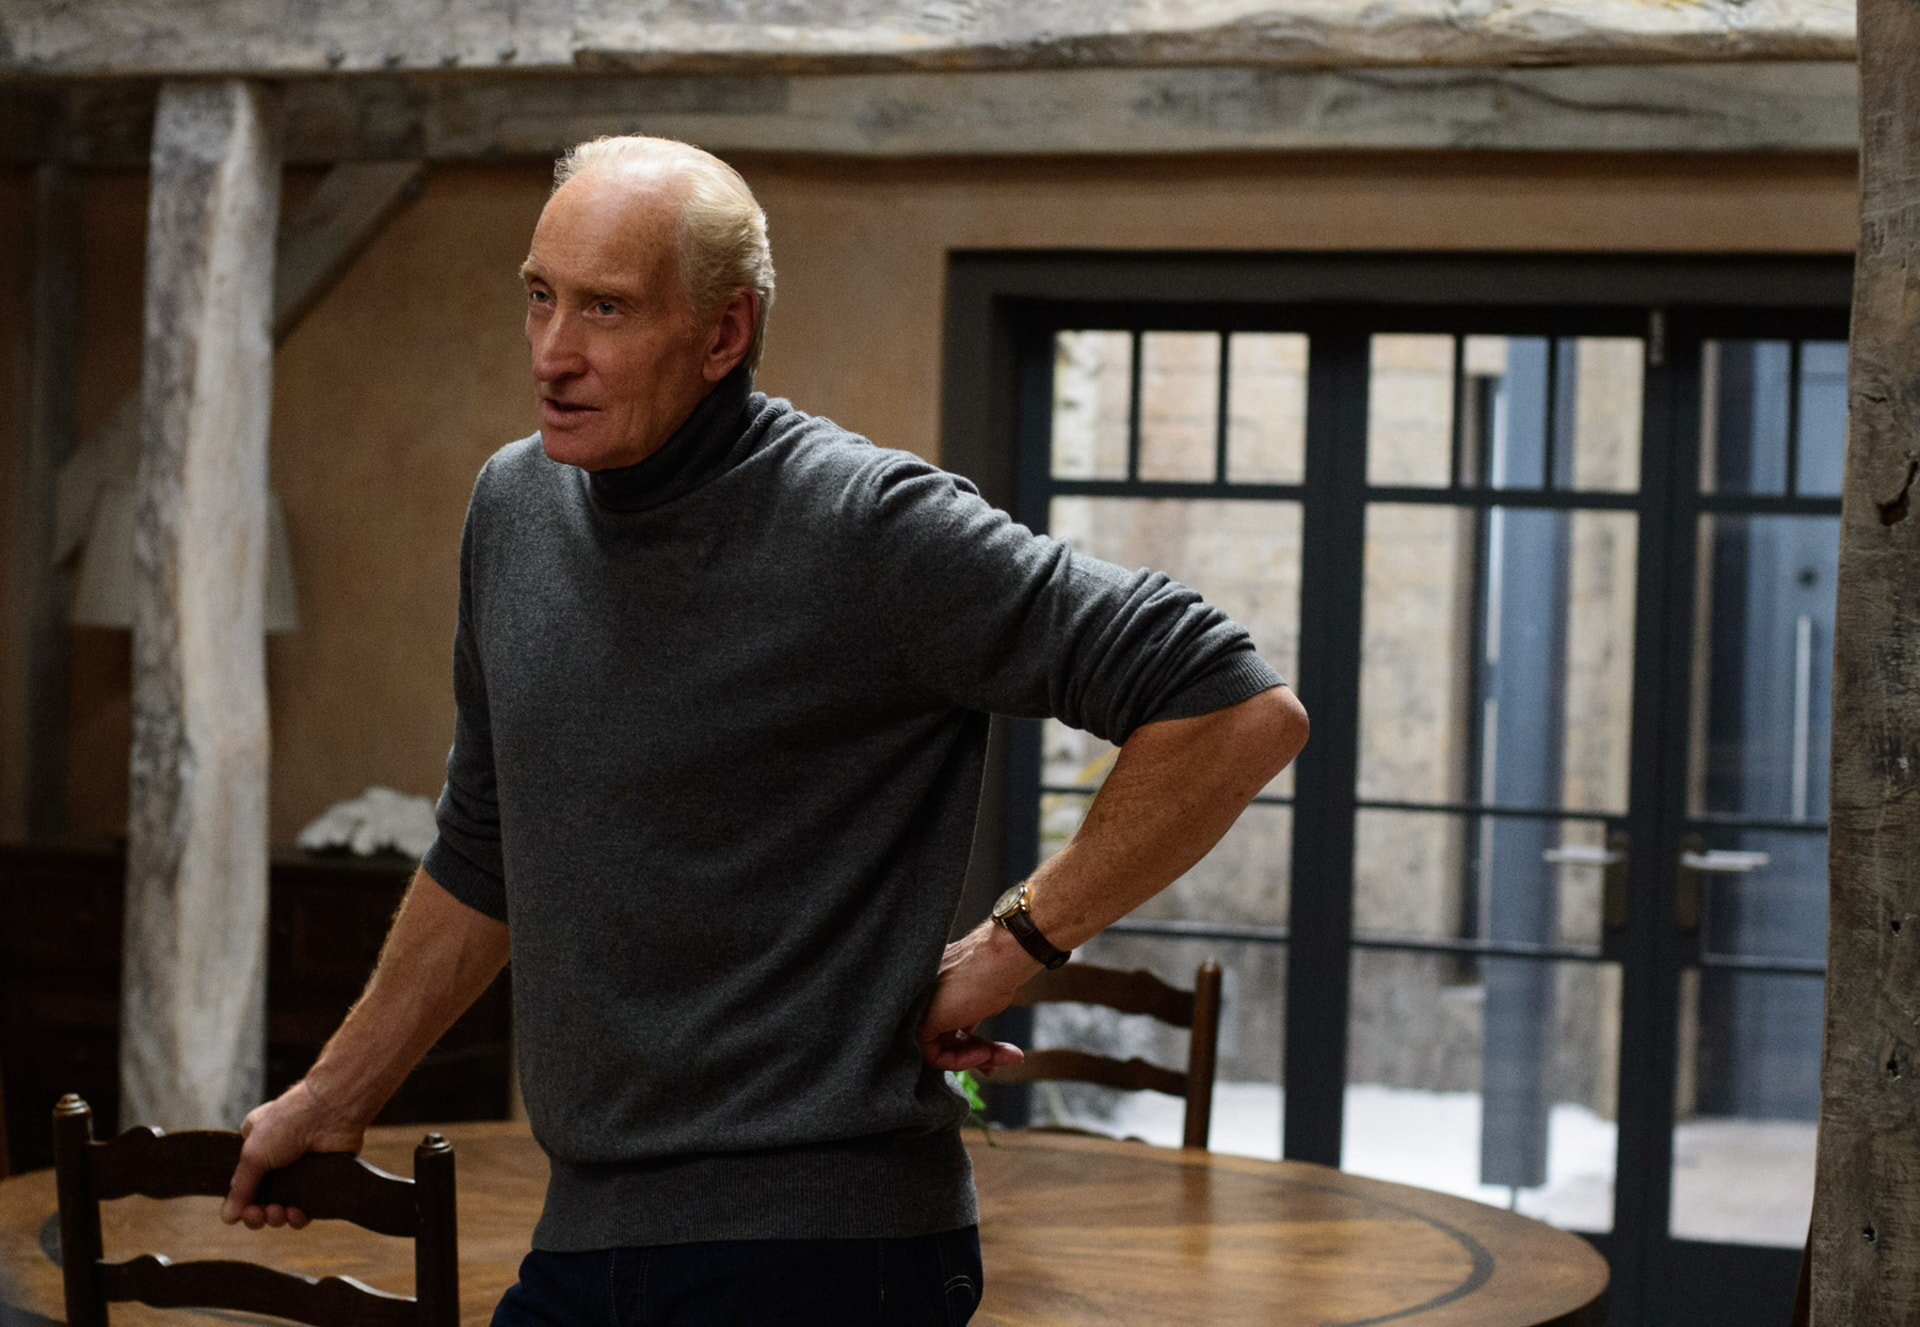 CHARLES DANCE as Stephen Traynor wearing a dark turtleneck with his hand on his hip, standing by a table.